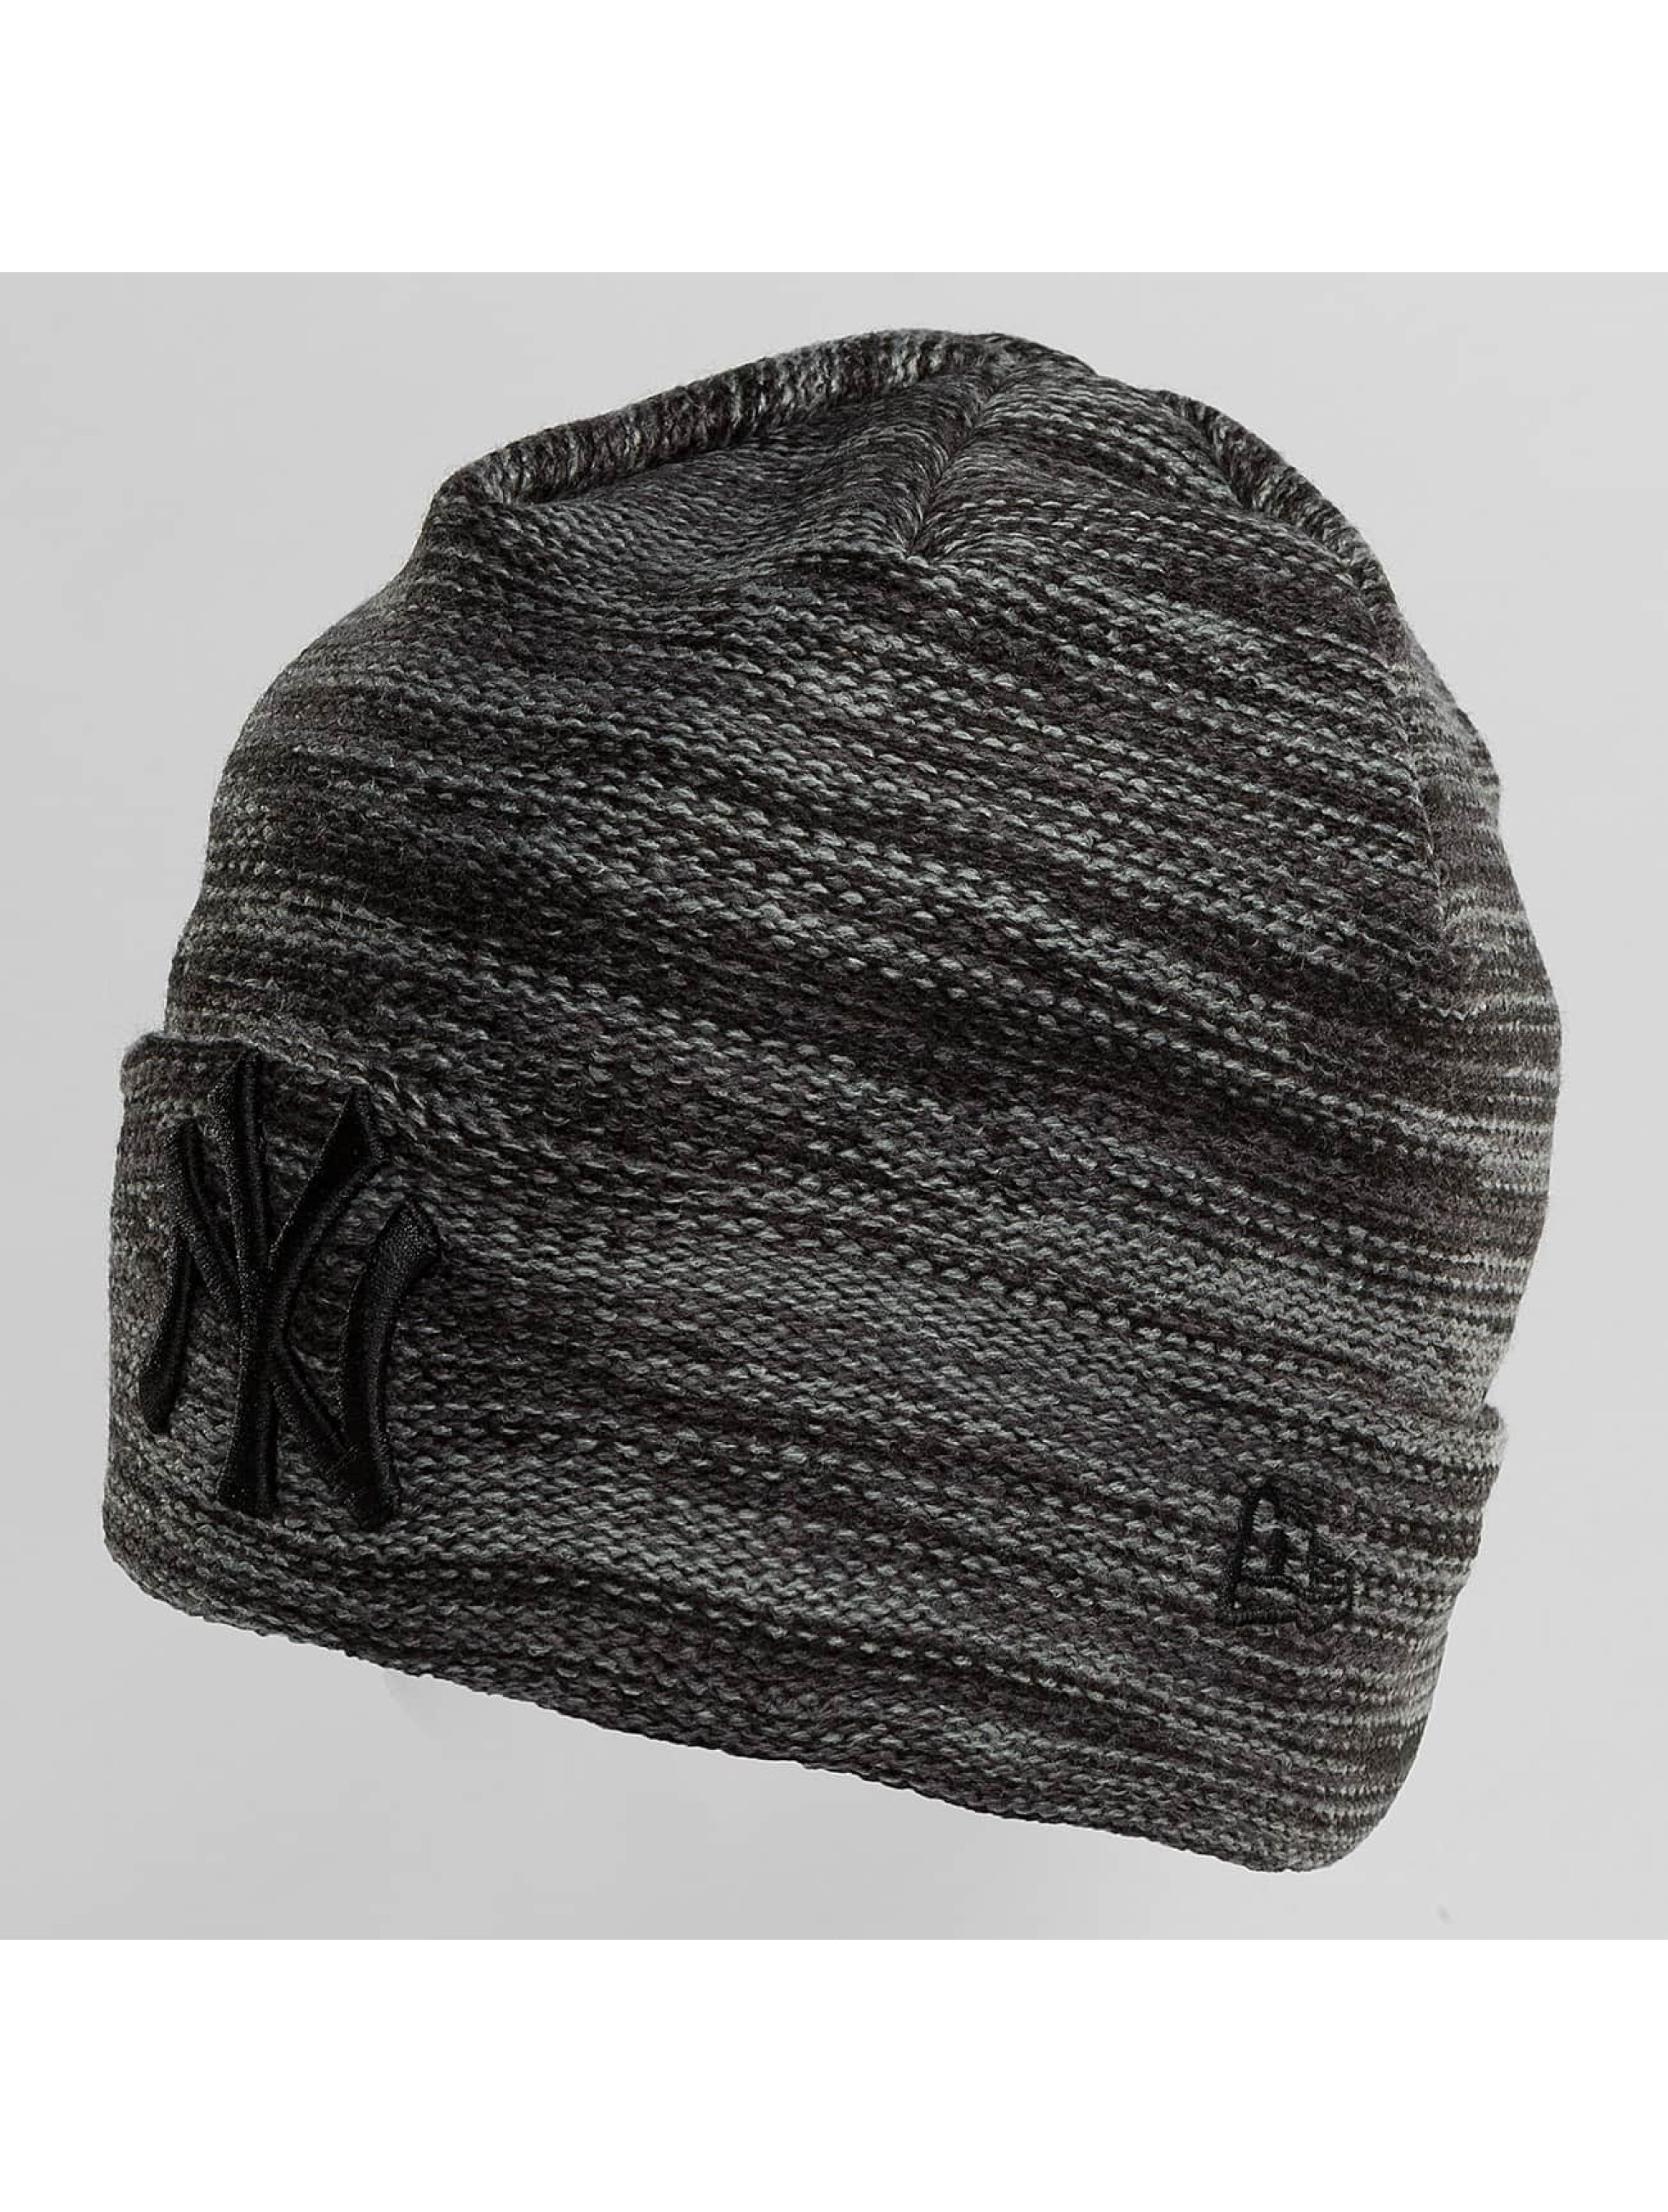 New Era Beanie New Era Marl Cuff NY Yankees Beanie grau